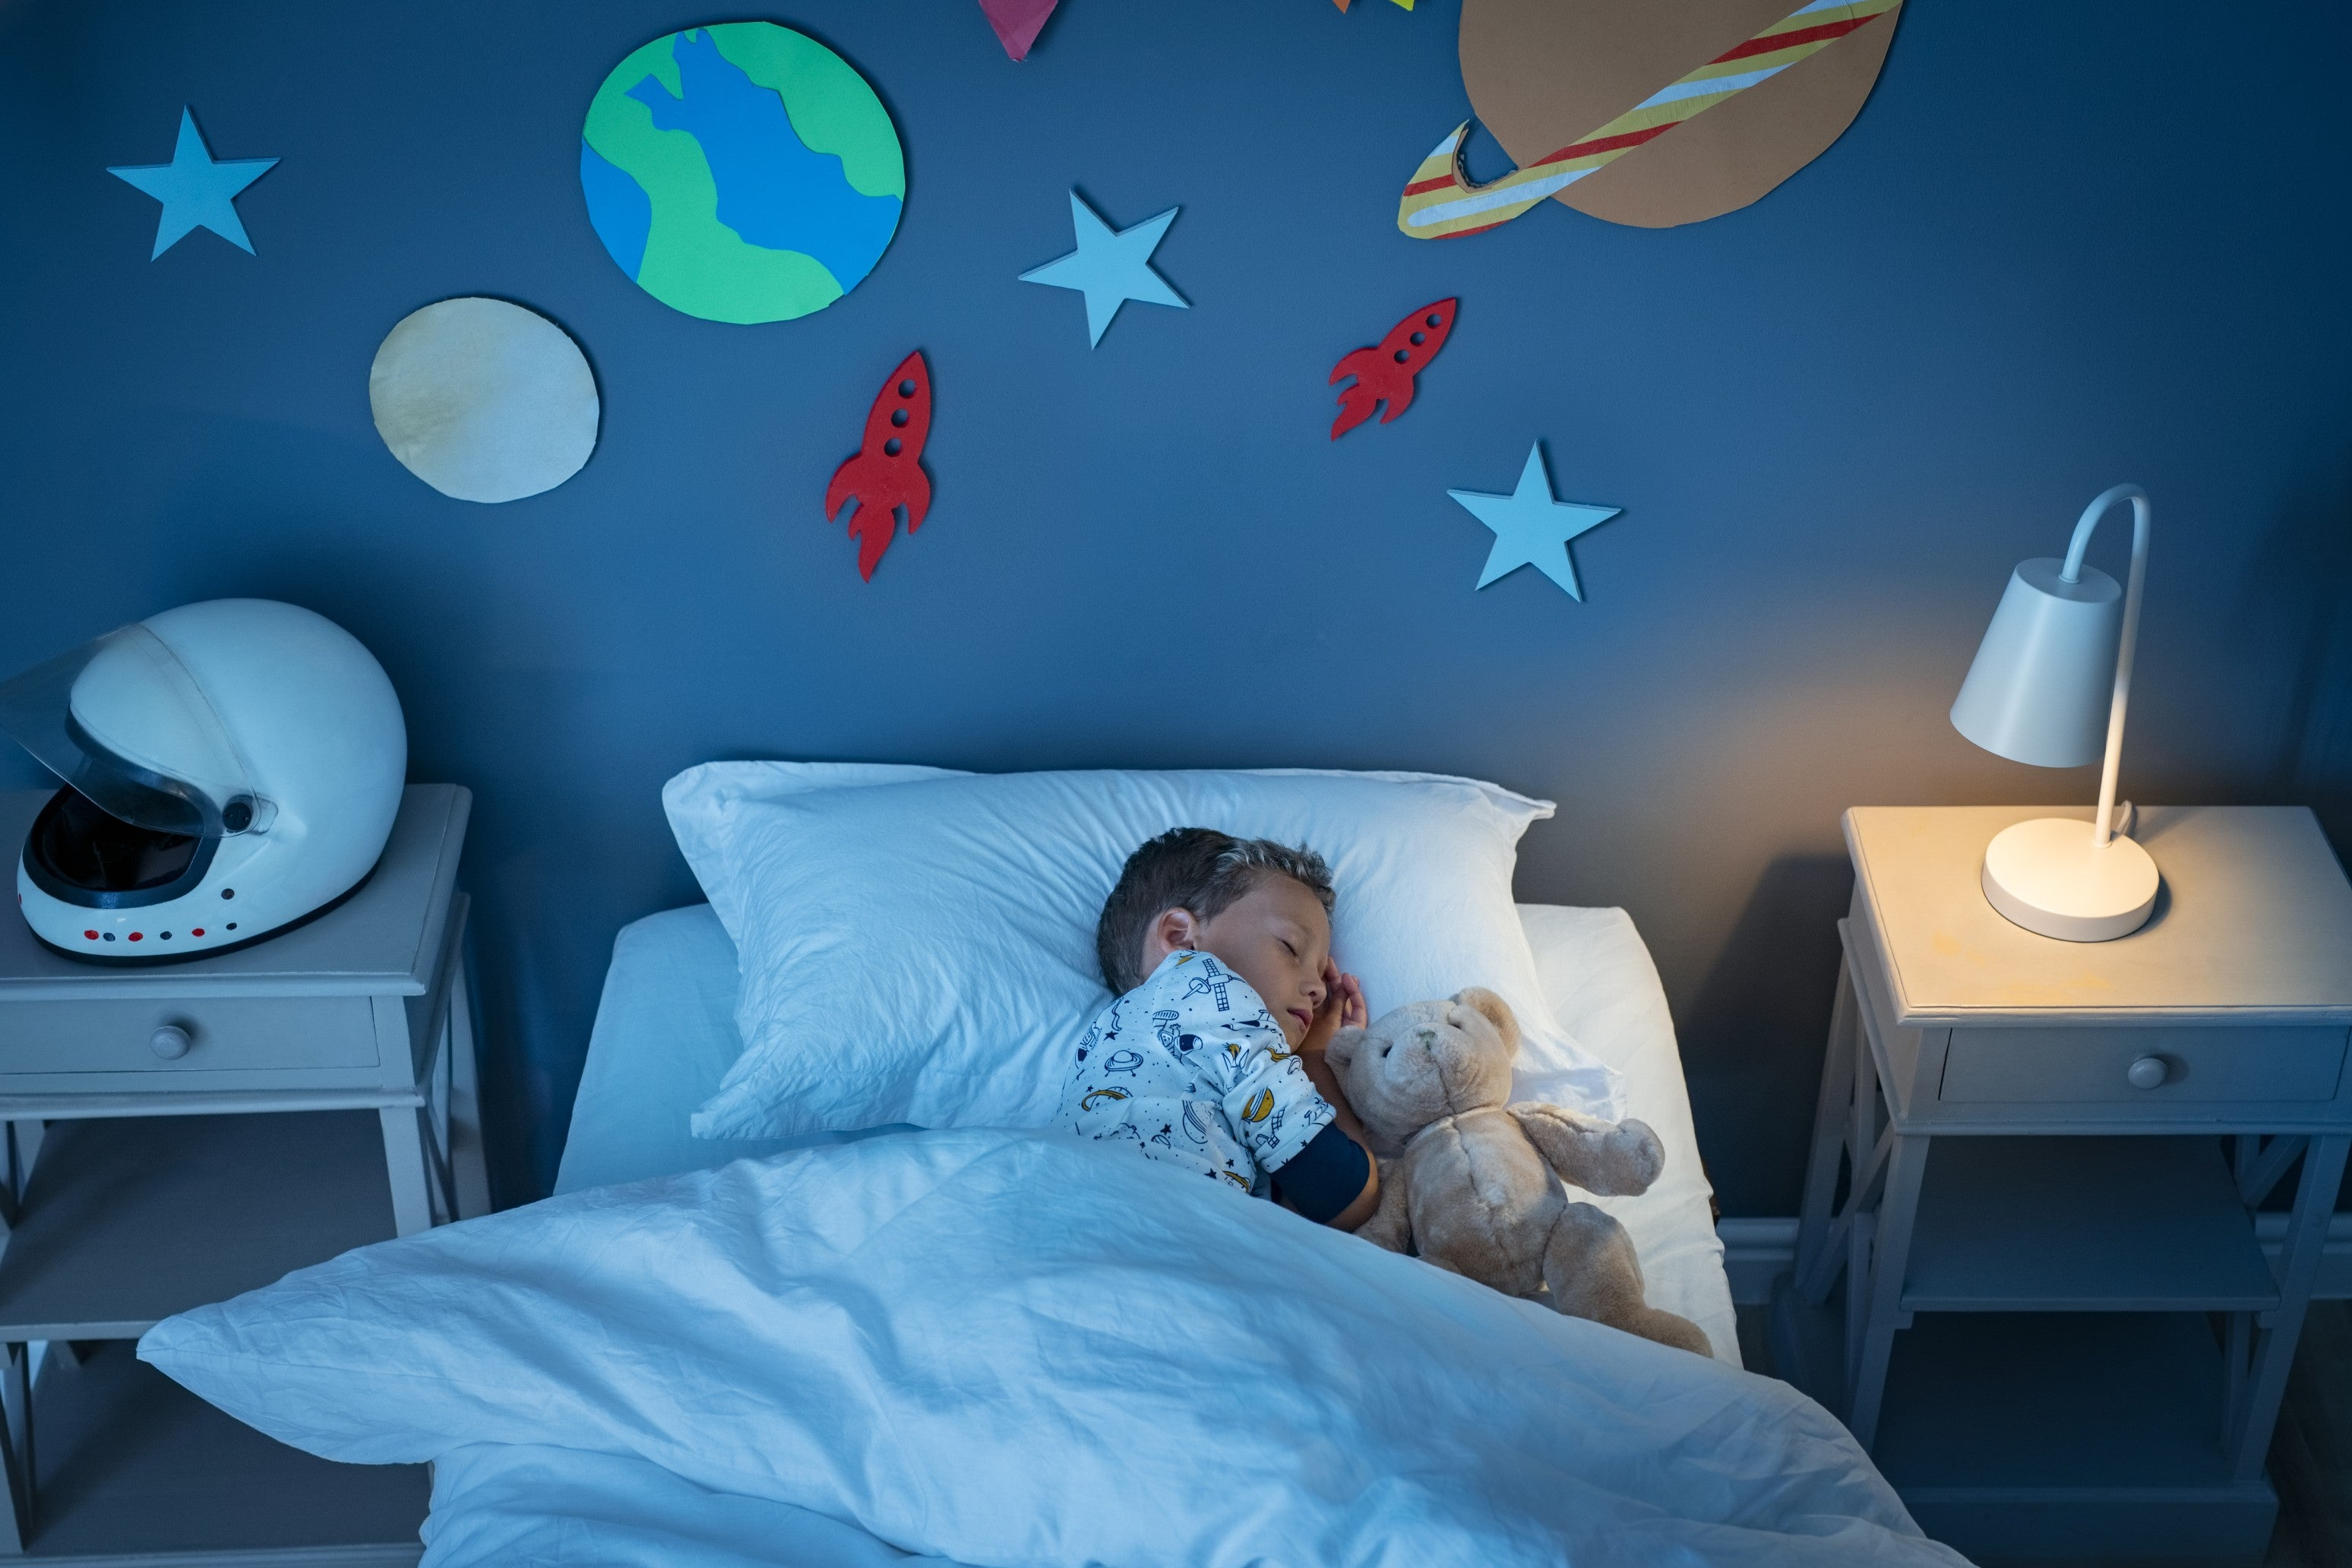 Young boy asleep in his bed with a light on